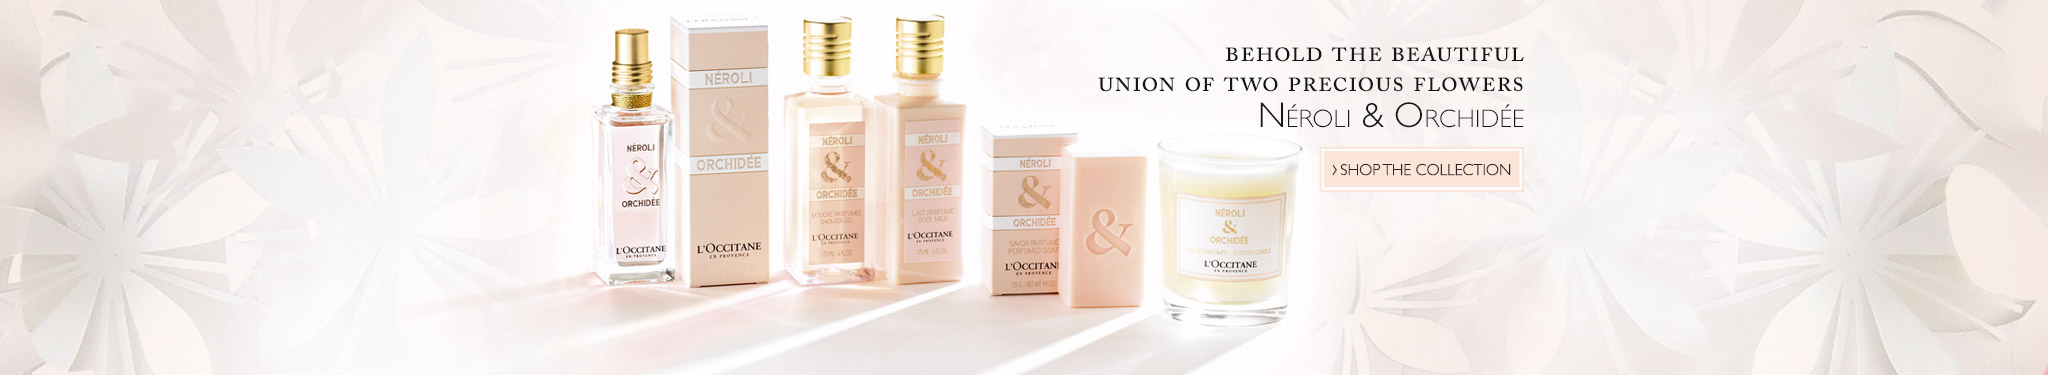 Neroli et Orchidee Collection